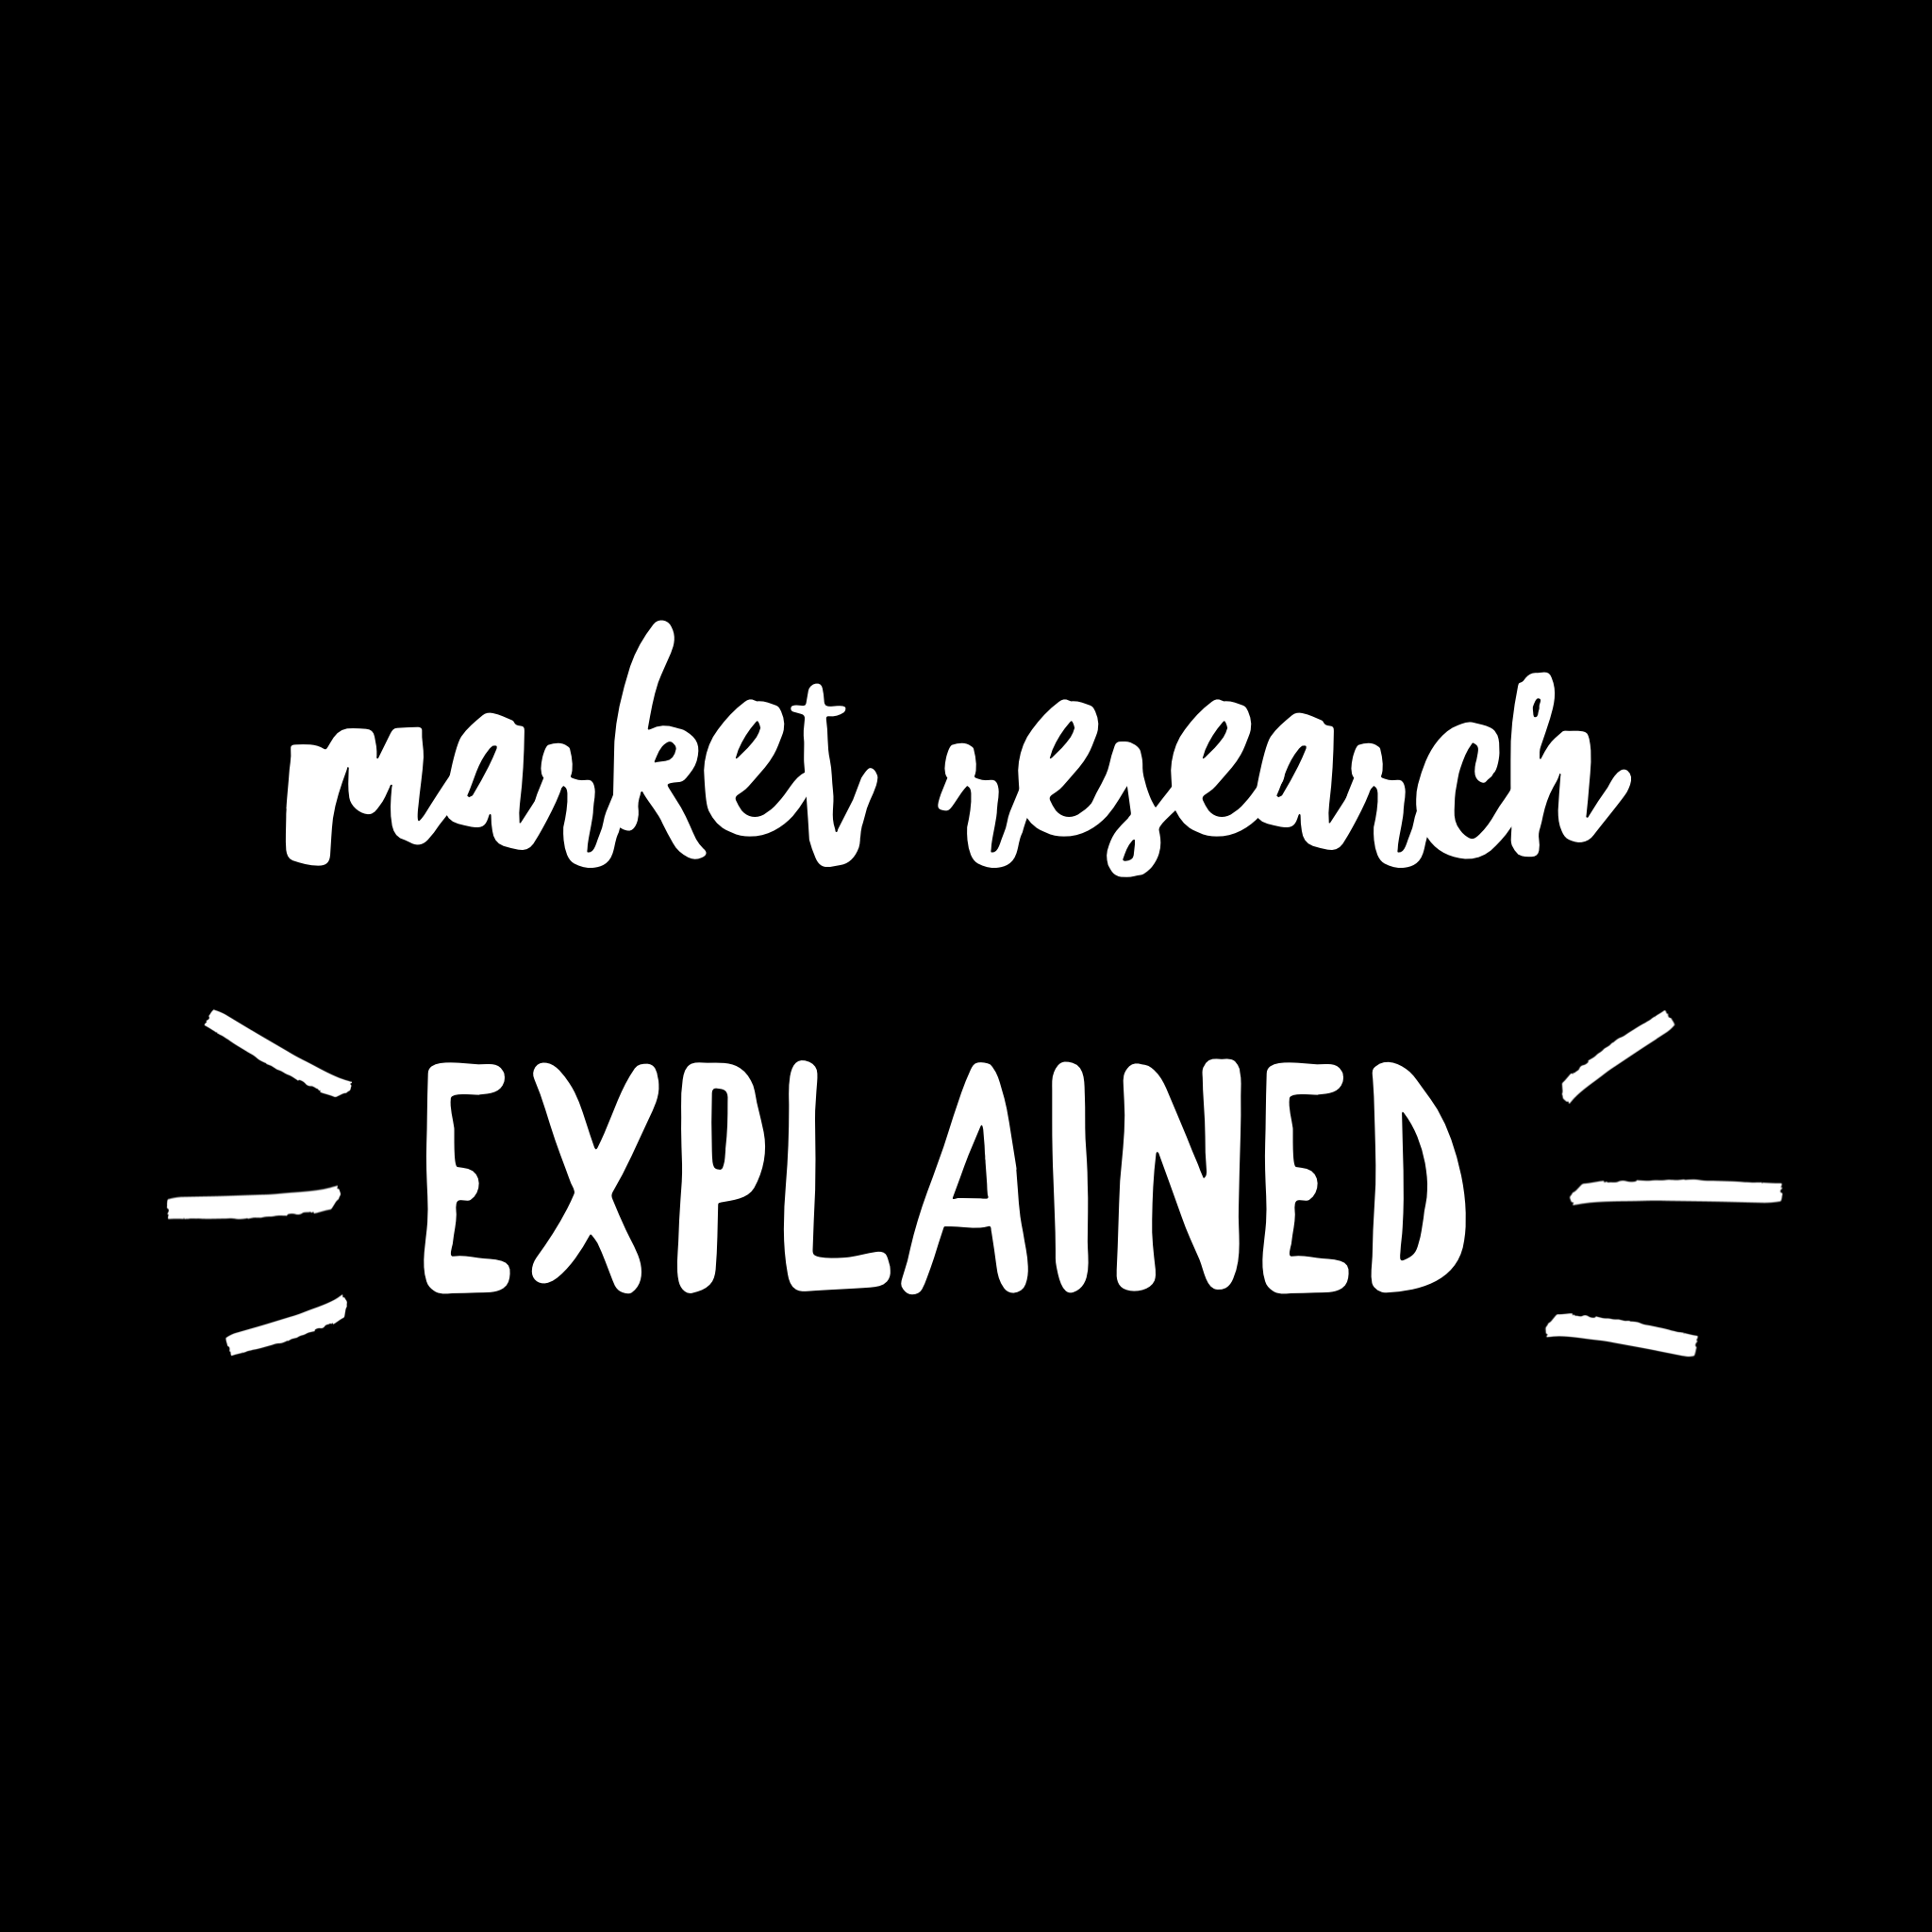 Market Research Explained!